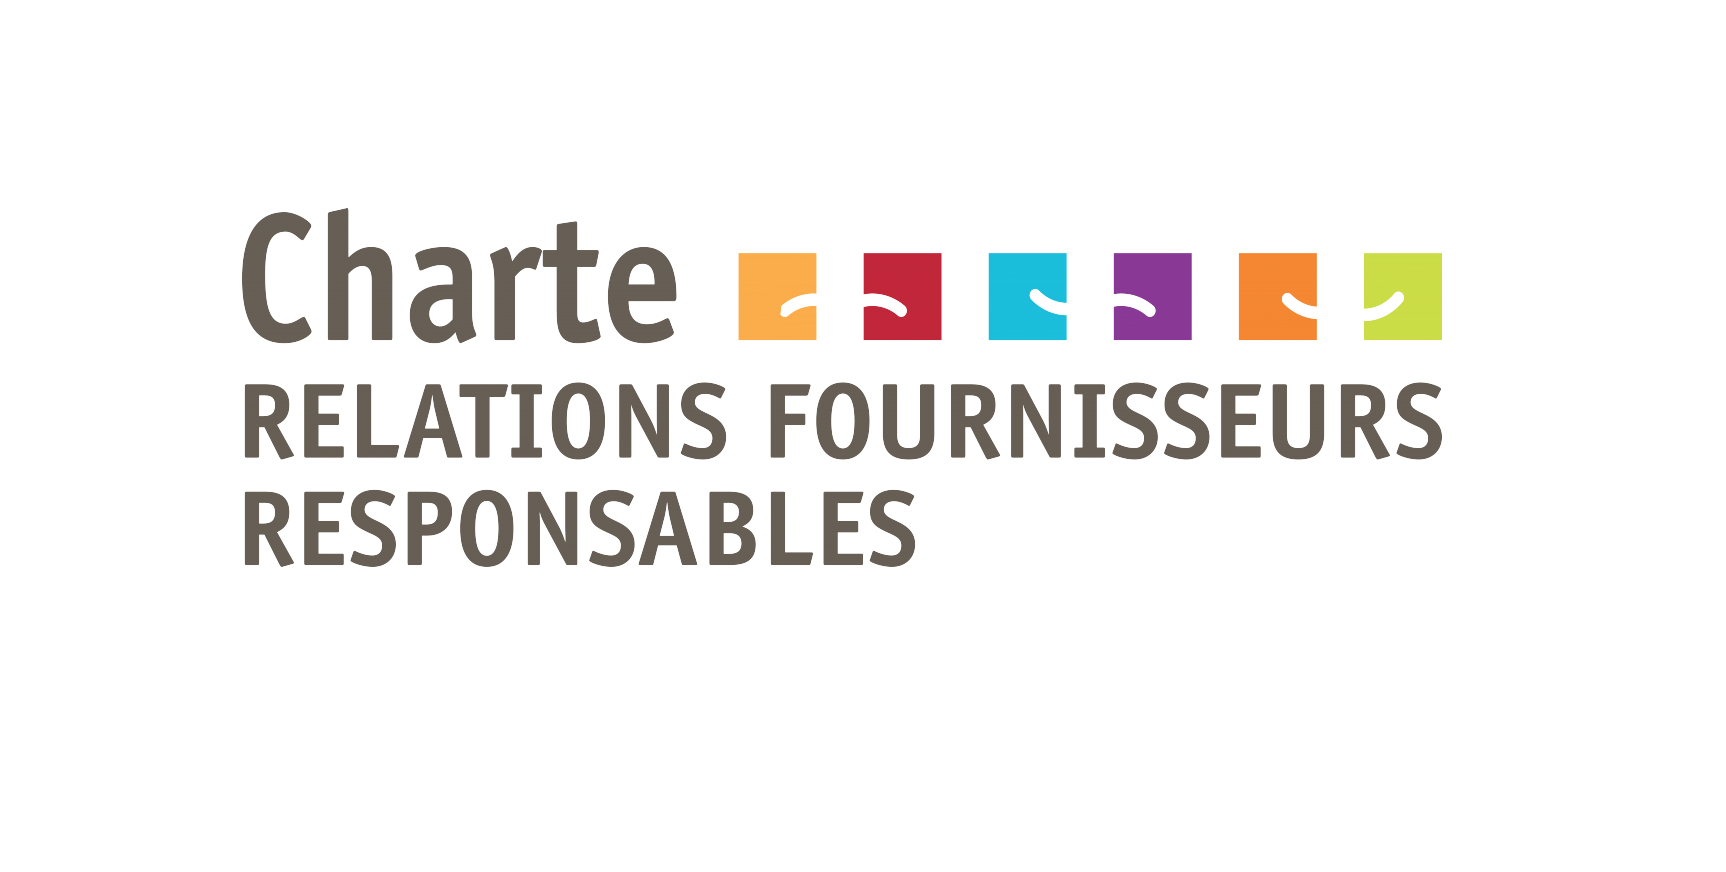 Charte Relations Fournisseurs Responsables